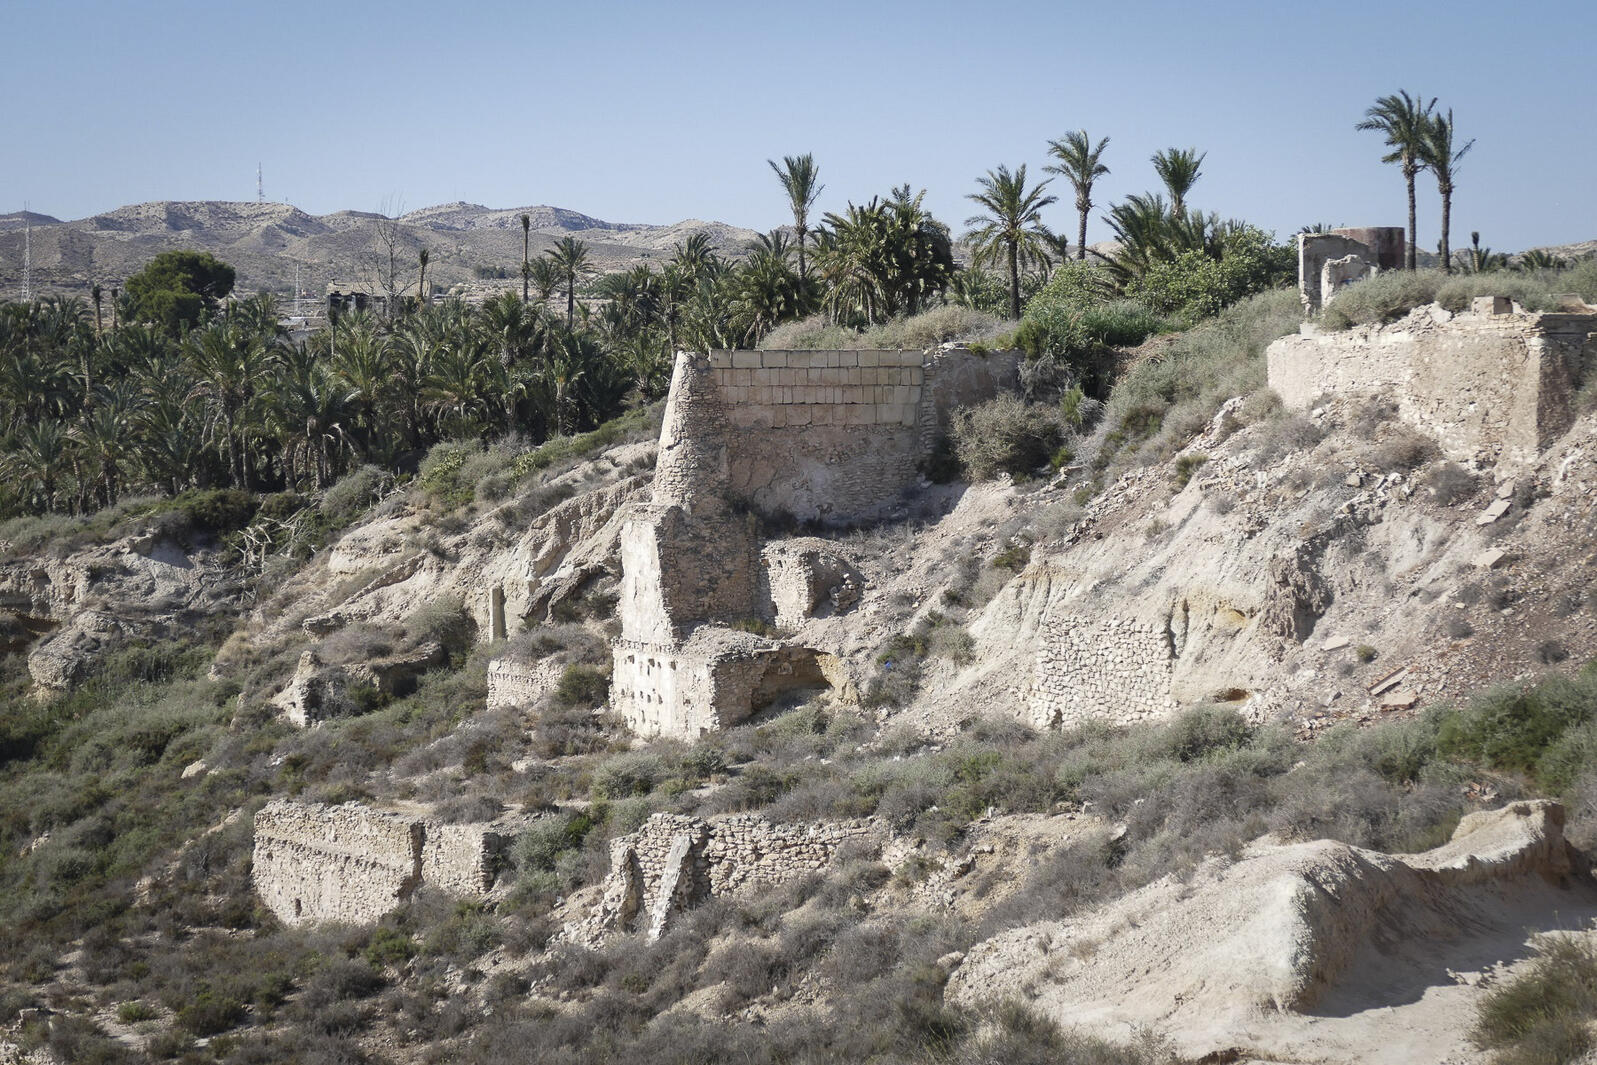 The landscape on Spain's central Mediterranean Coast is hot and dry, more African than European. Noah Strycker